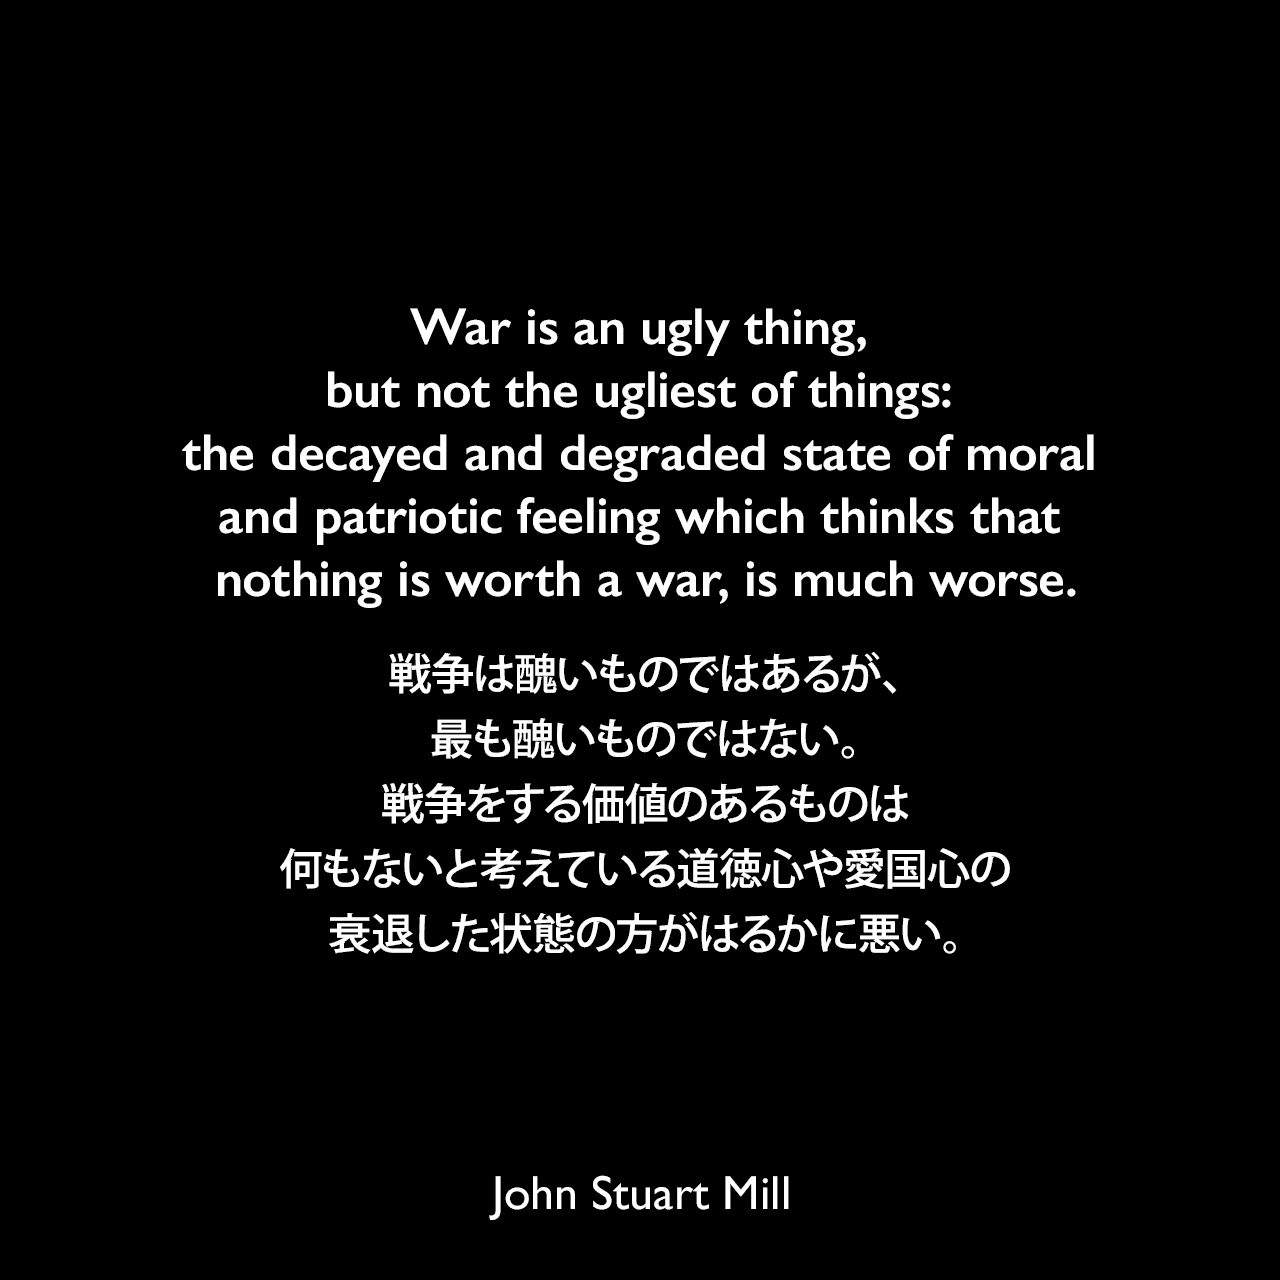 War is an ugly thing, but not the ugliest of things: the decayed and degraded state of moral and patriotic feeling which thinks that nothing is worth a war, is much worse.戦争は醜いものではあるが、最も醜いものではない。戦争をする価値のあるものは何もないと考えている道徳心や愛国心の衰退した状態の方がはるかに悪い。- 1862年2月、フレイザーズ・マガジン(Fraser's Magazine)よりJohn Stuart Mill